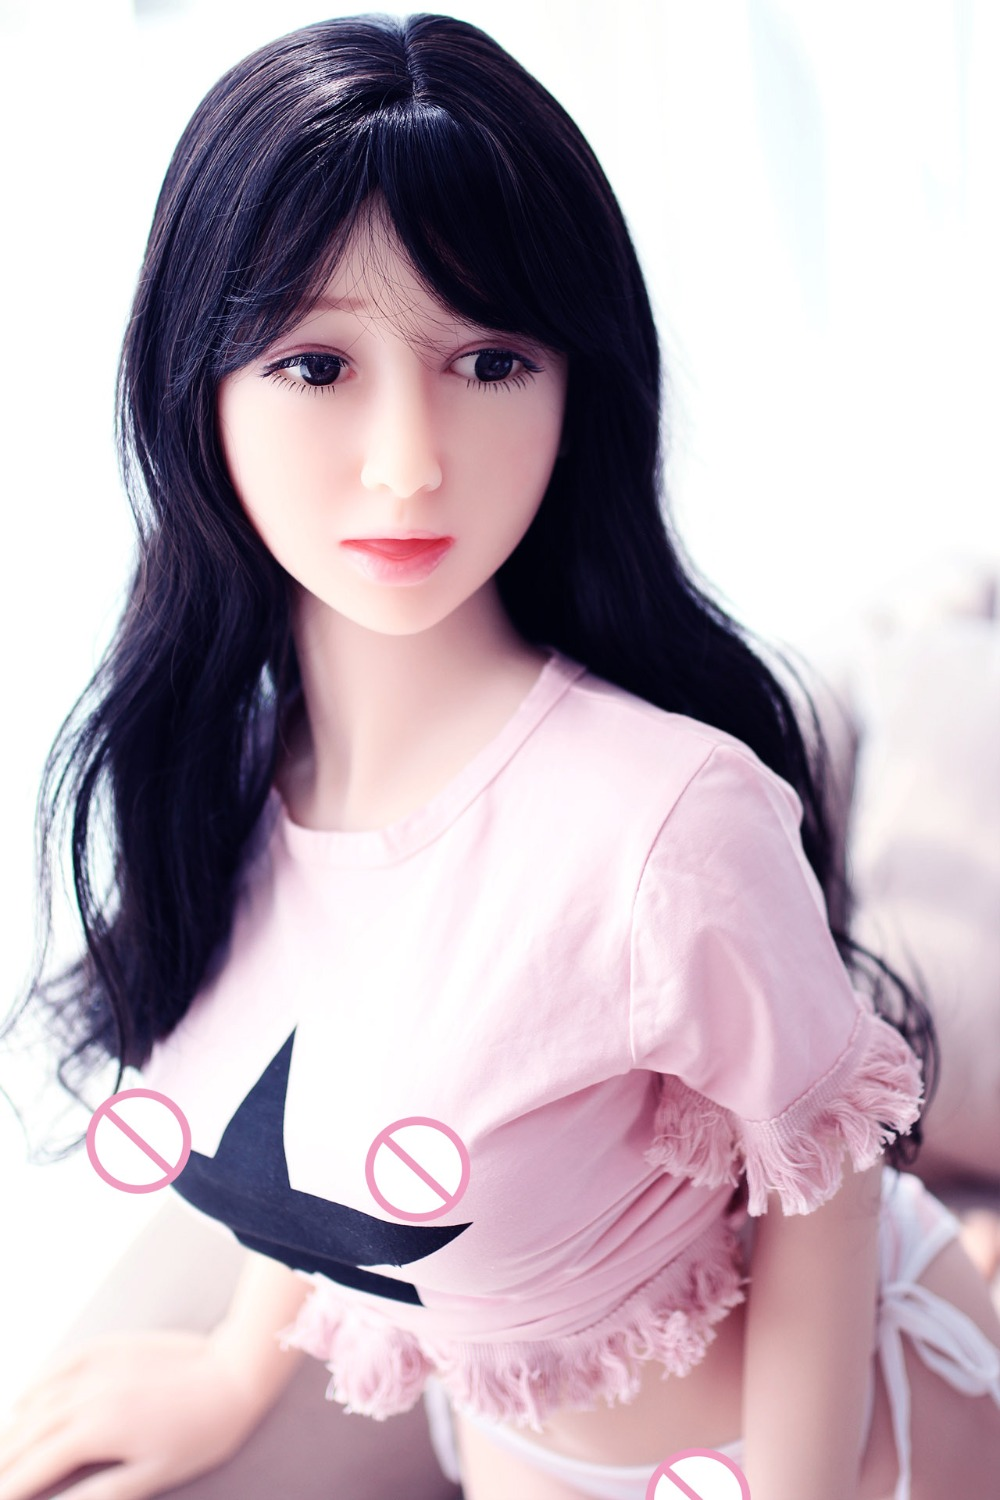 Real sex doll 140cm lifelike real silicone sex dolls with metal skeleton oral/vagina/anal for men life size love doll cosdoll 148cm nana lifelike real sex doll full size silicone with skeleton love doll oral vagina pussy anal adul dolls for men